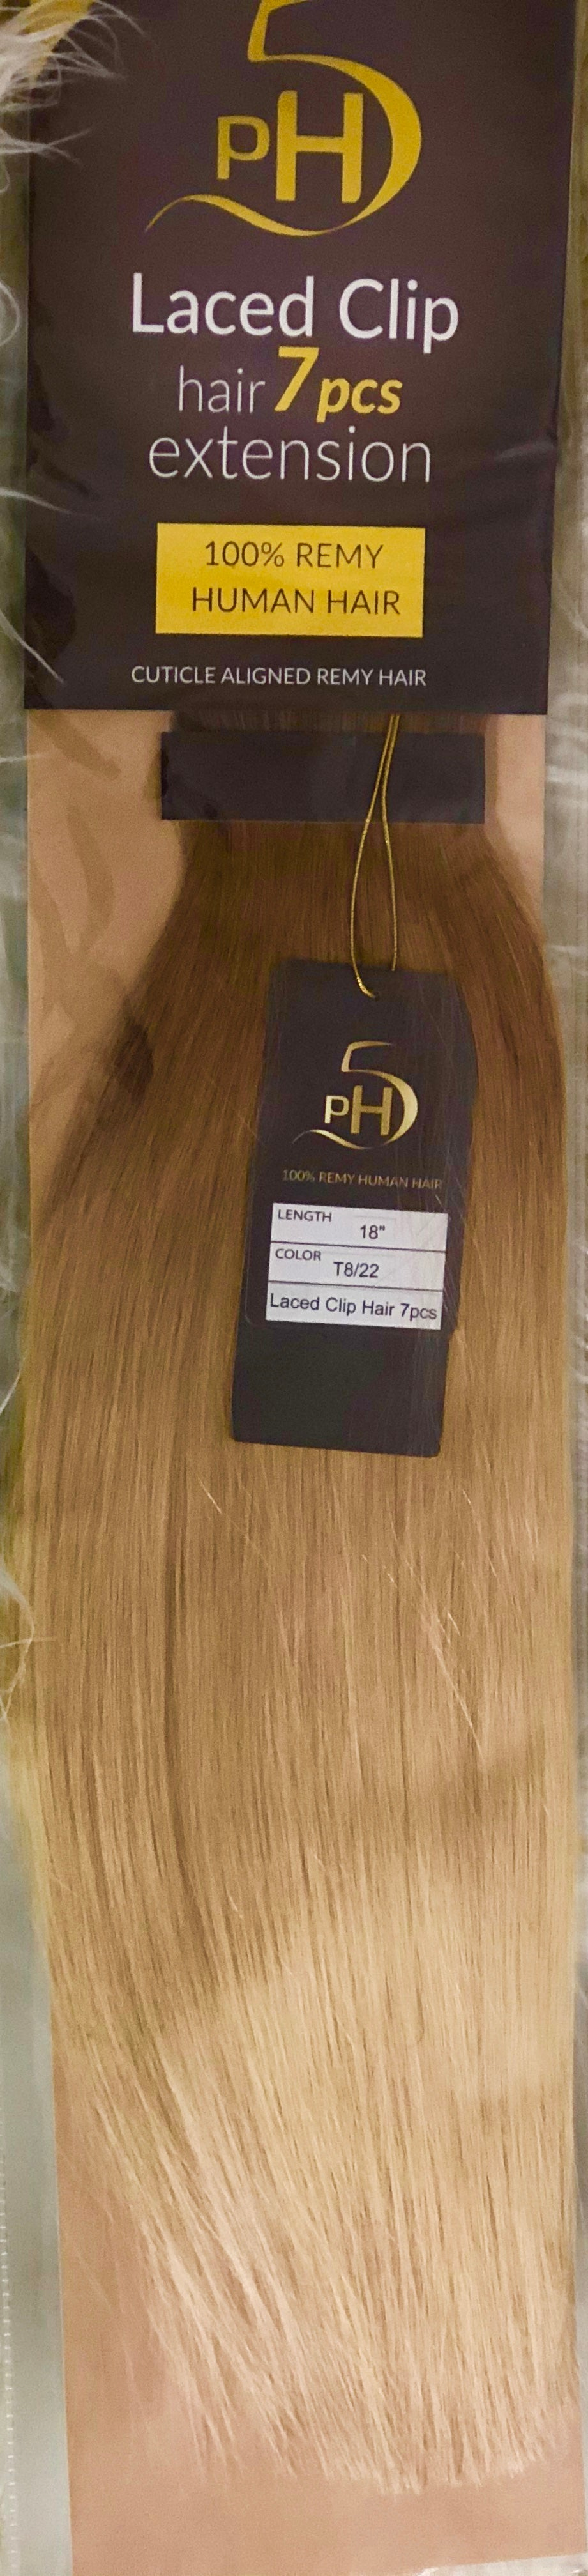 PH5 Laced Clip Hair | 7 Pieces Extension | 100% Remy Human Hair | 18